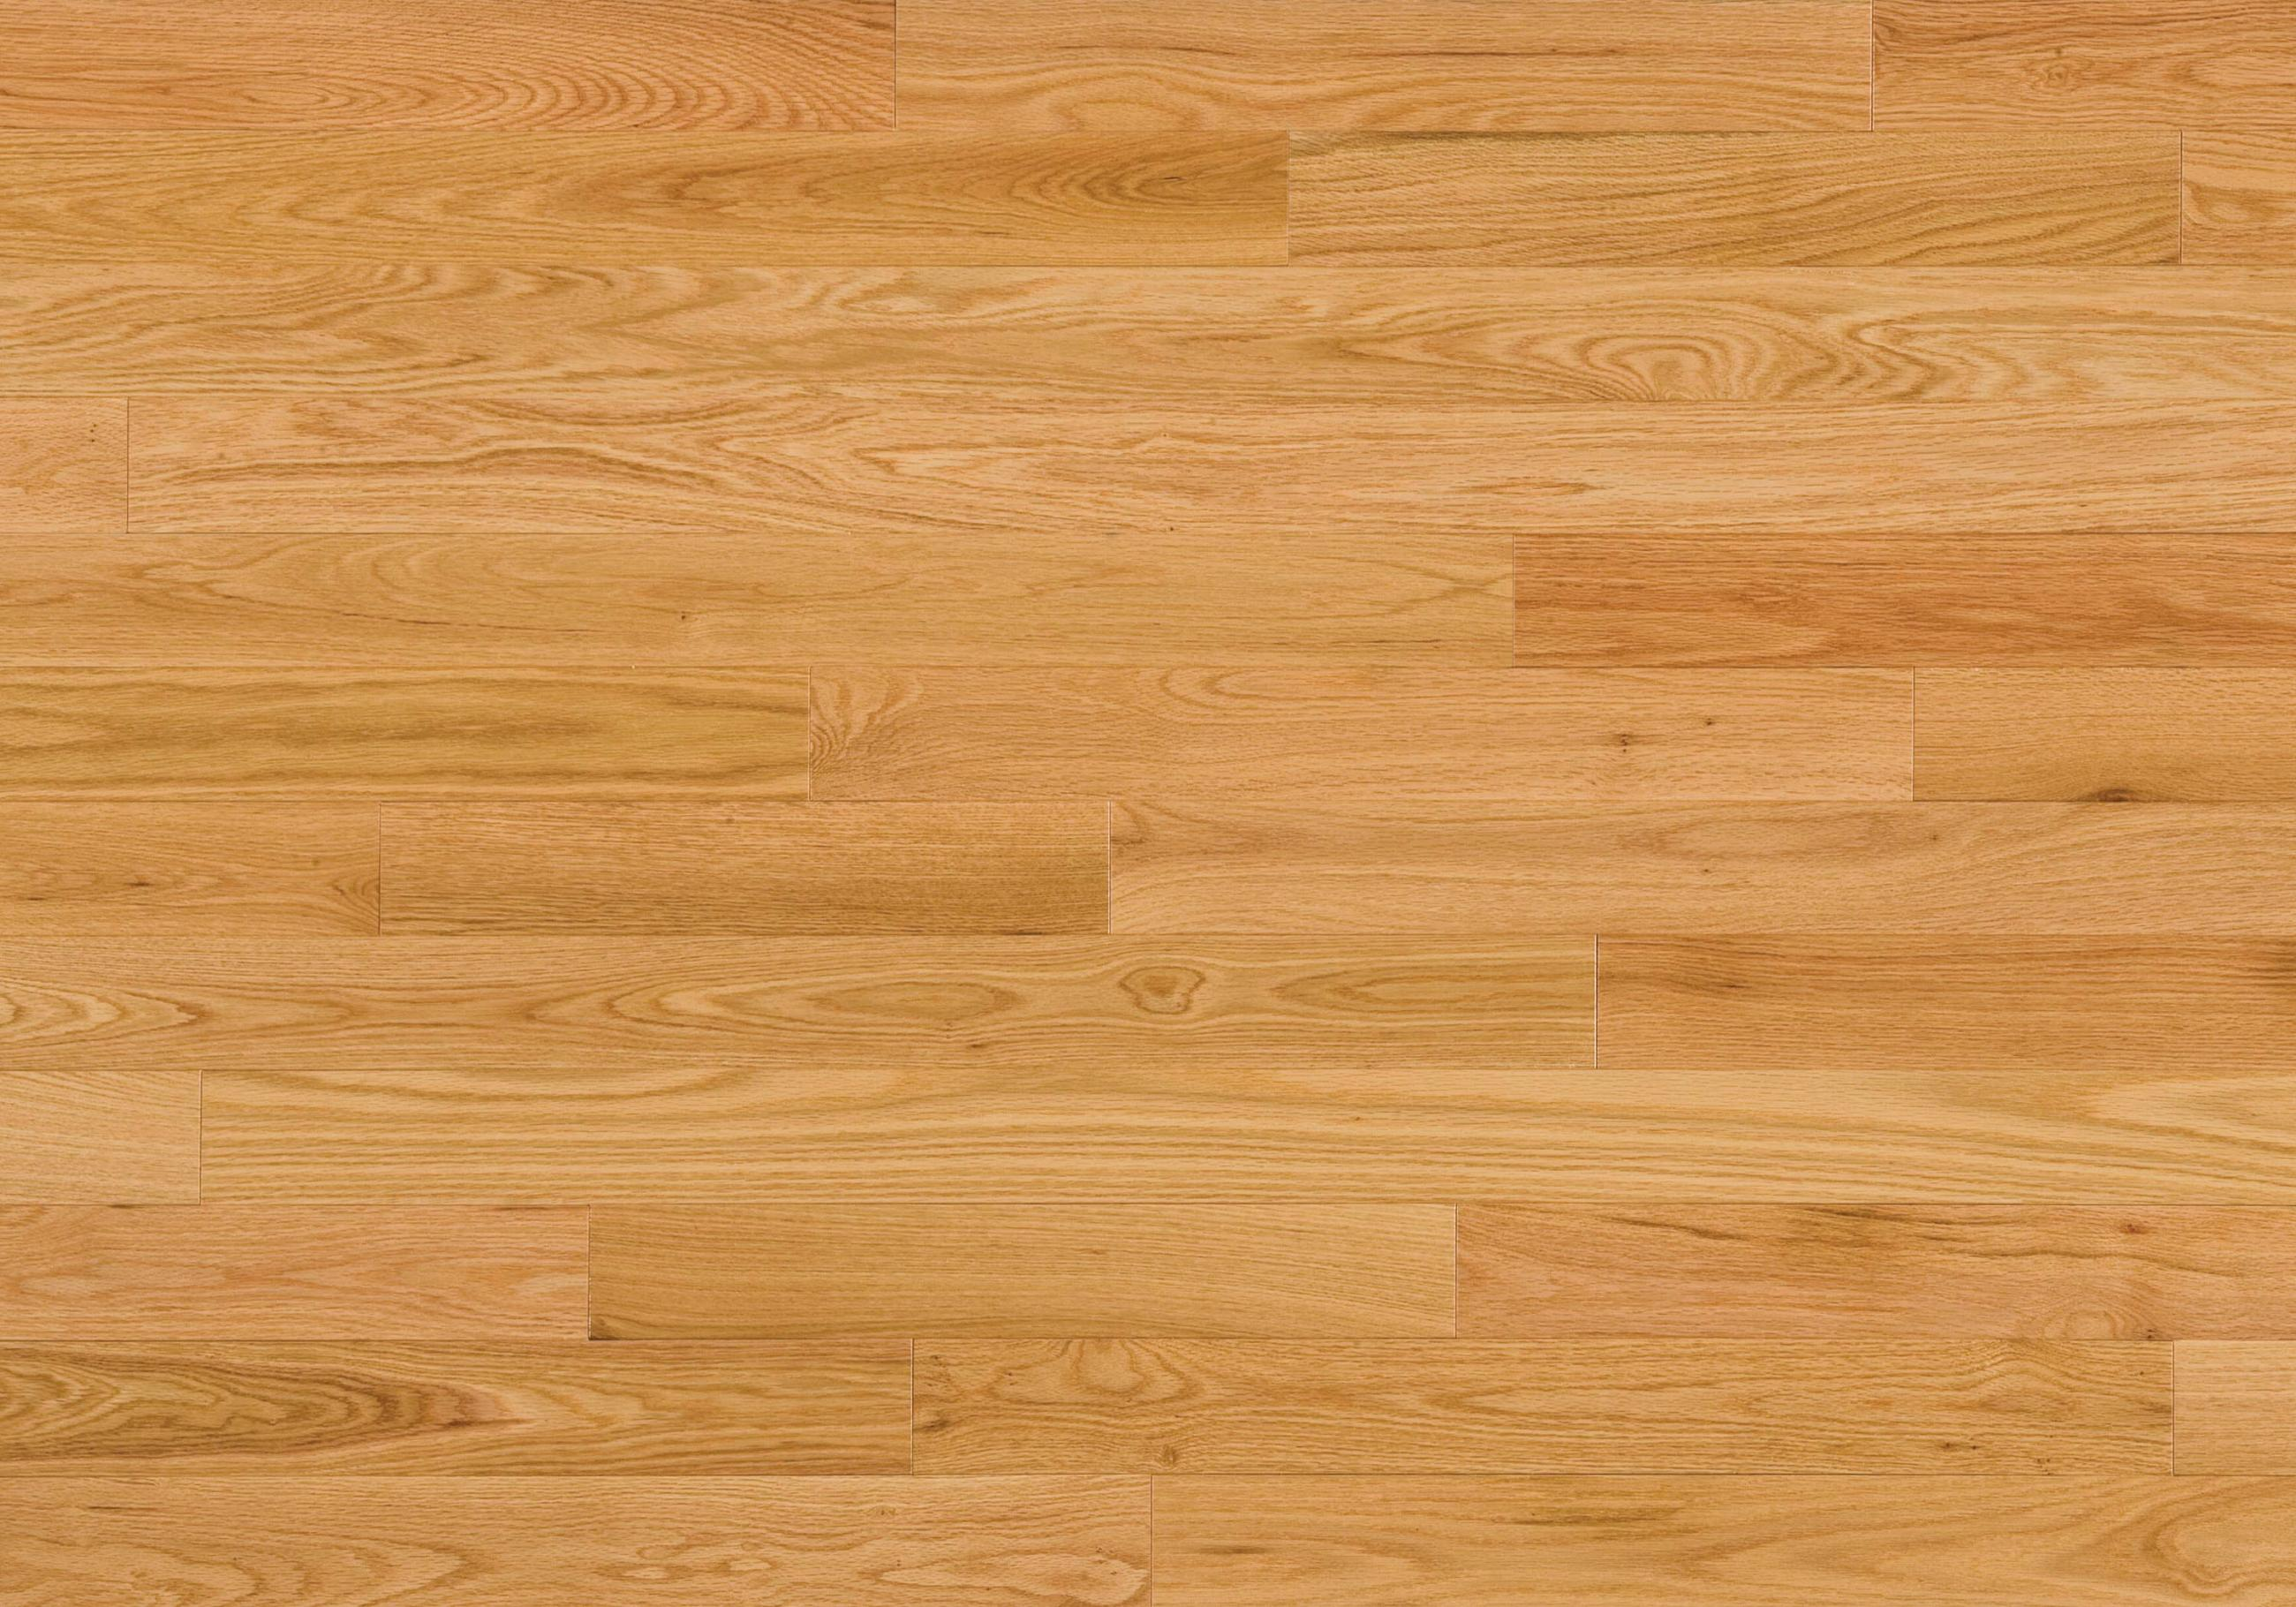 Oak Hardwood Flooring ~ Lauzon ambiance collection red oak natural aa floors toronto